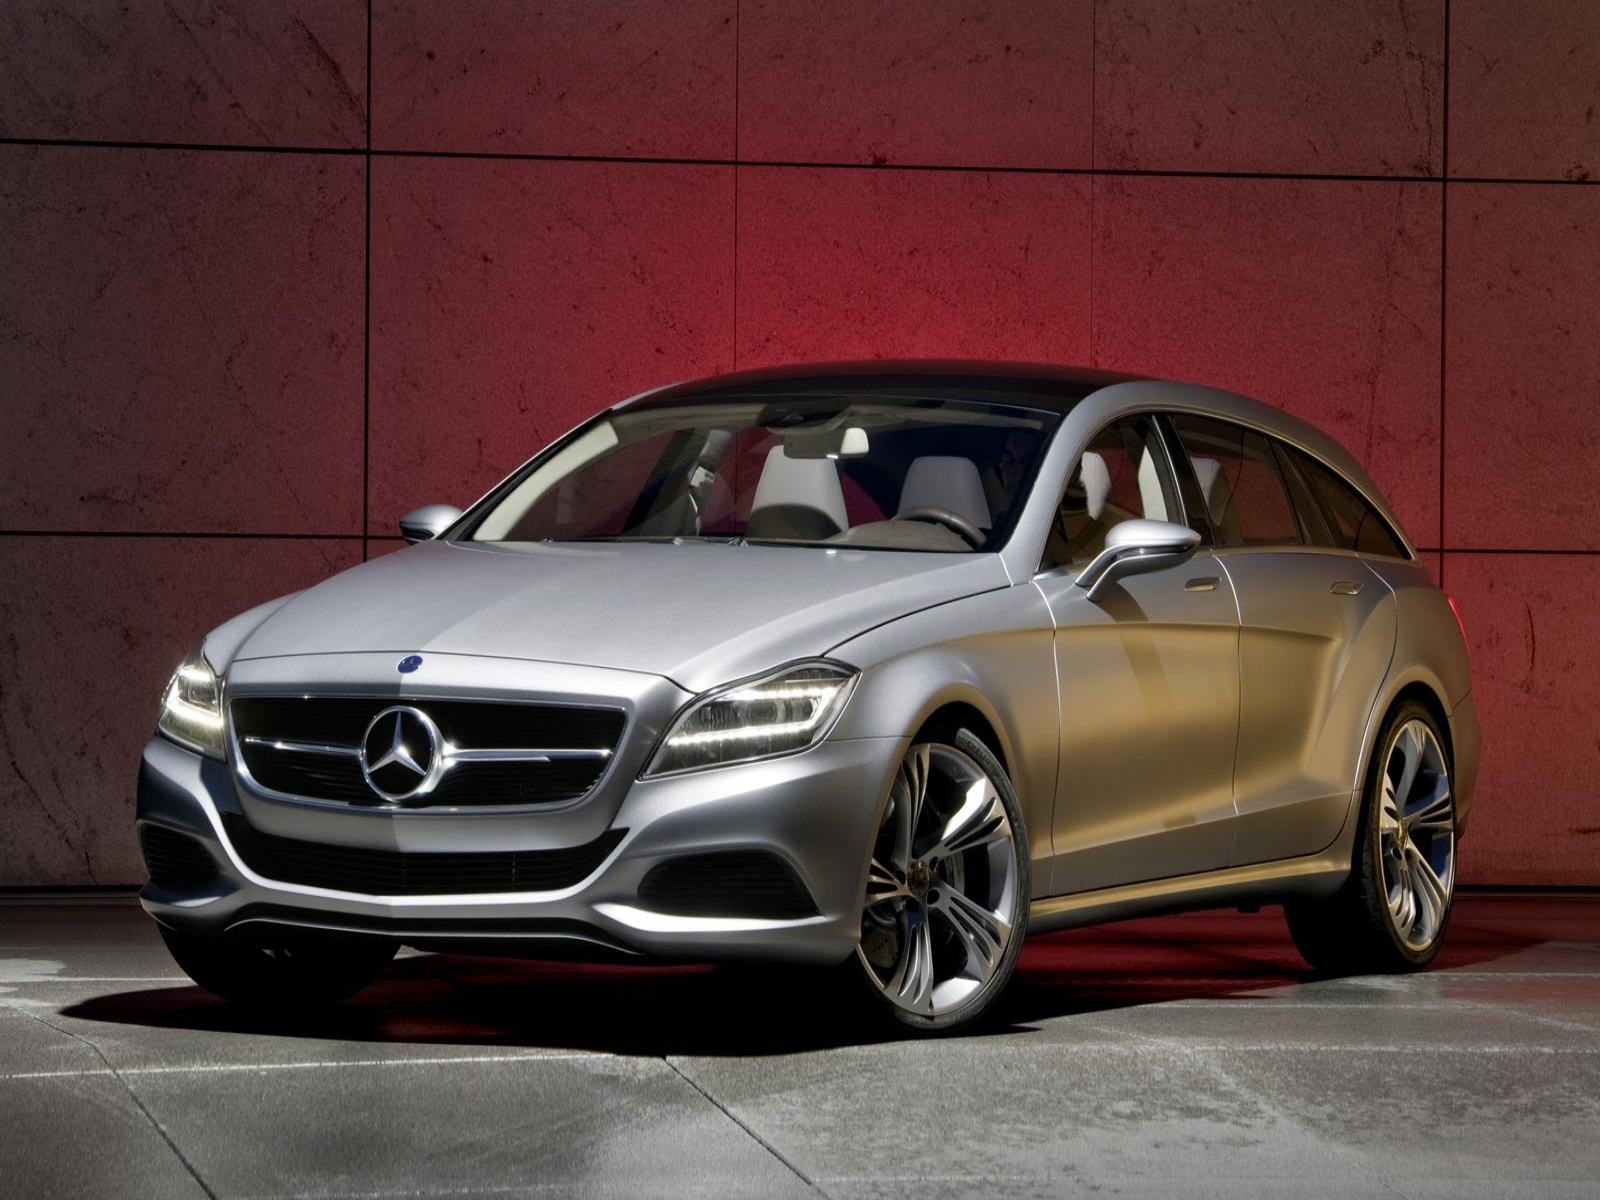 Обои Mercedes-Benz-CLS-Shooting-Break-Concep 1600x1200